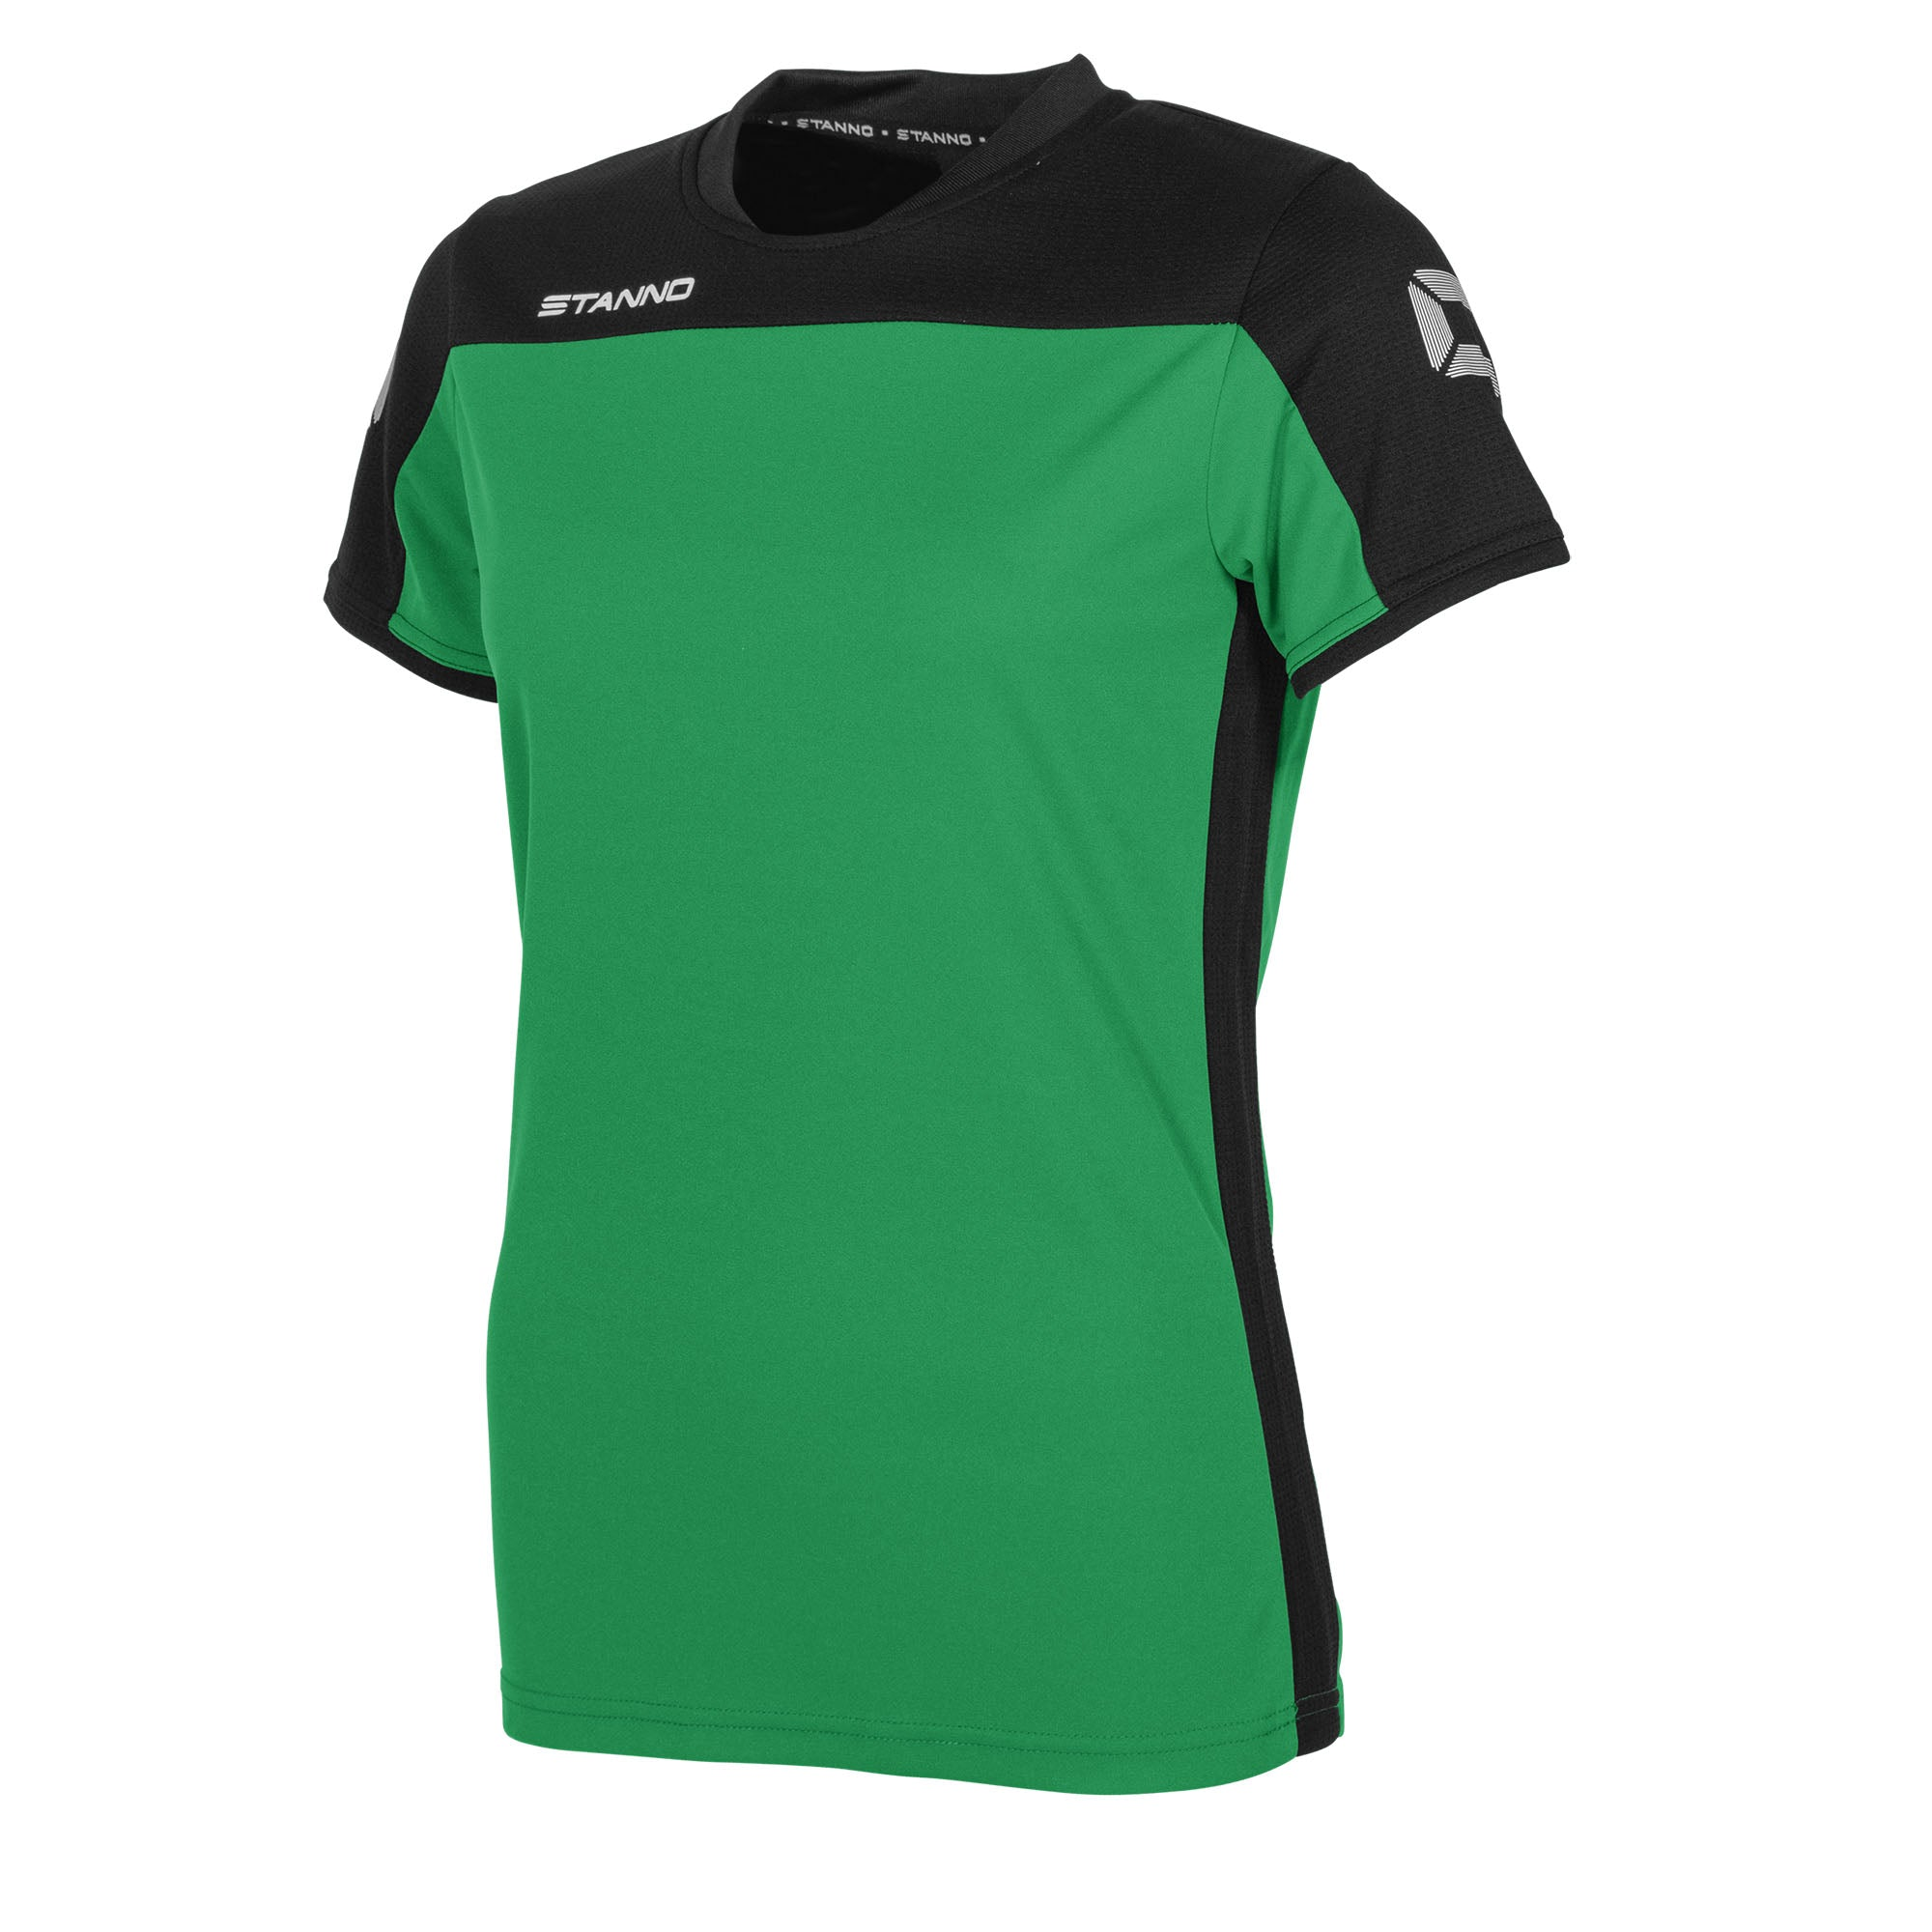 Stanno Pride ladies t-shirt in green, with mesh contrast black shoulder and side panel